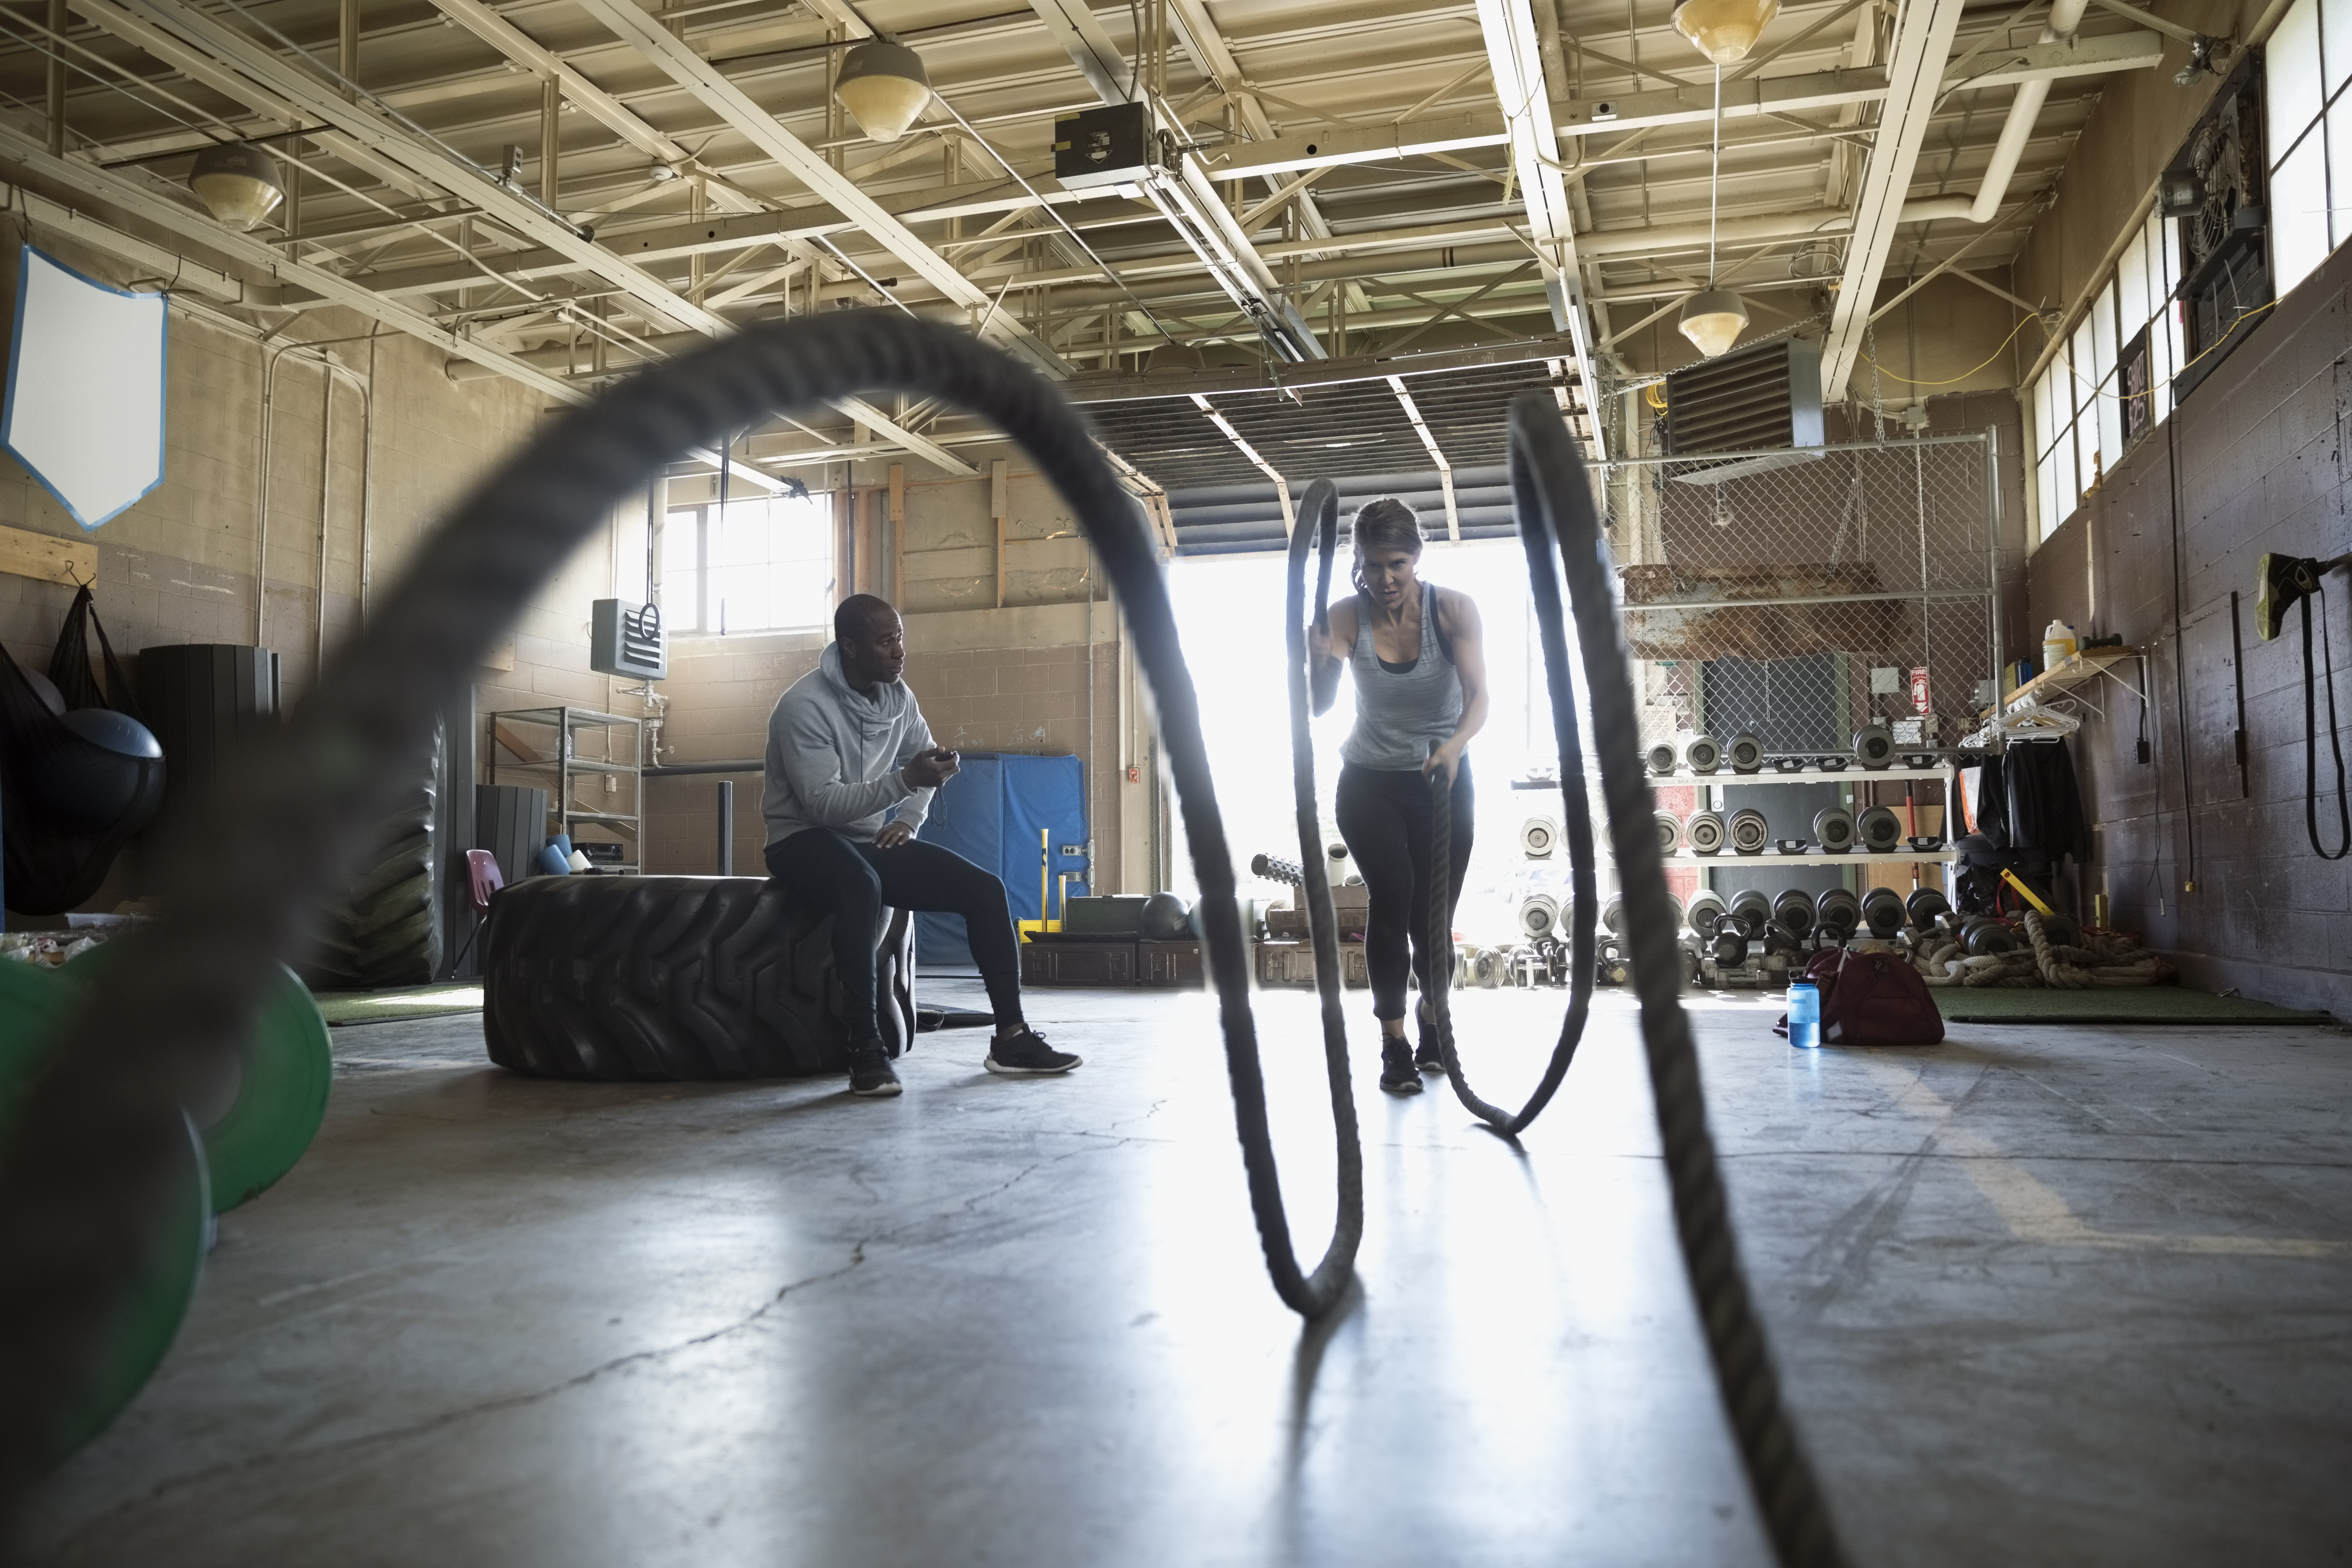 Male personal trainer watching female client doing gym battling ropes exercise in gym